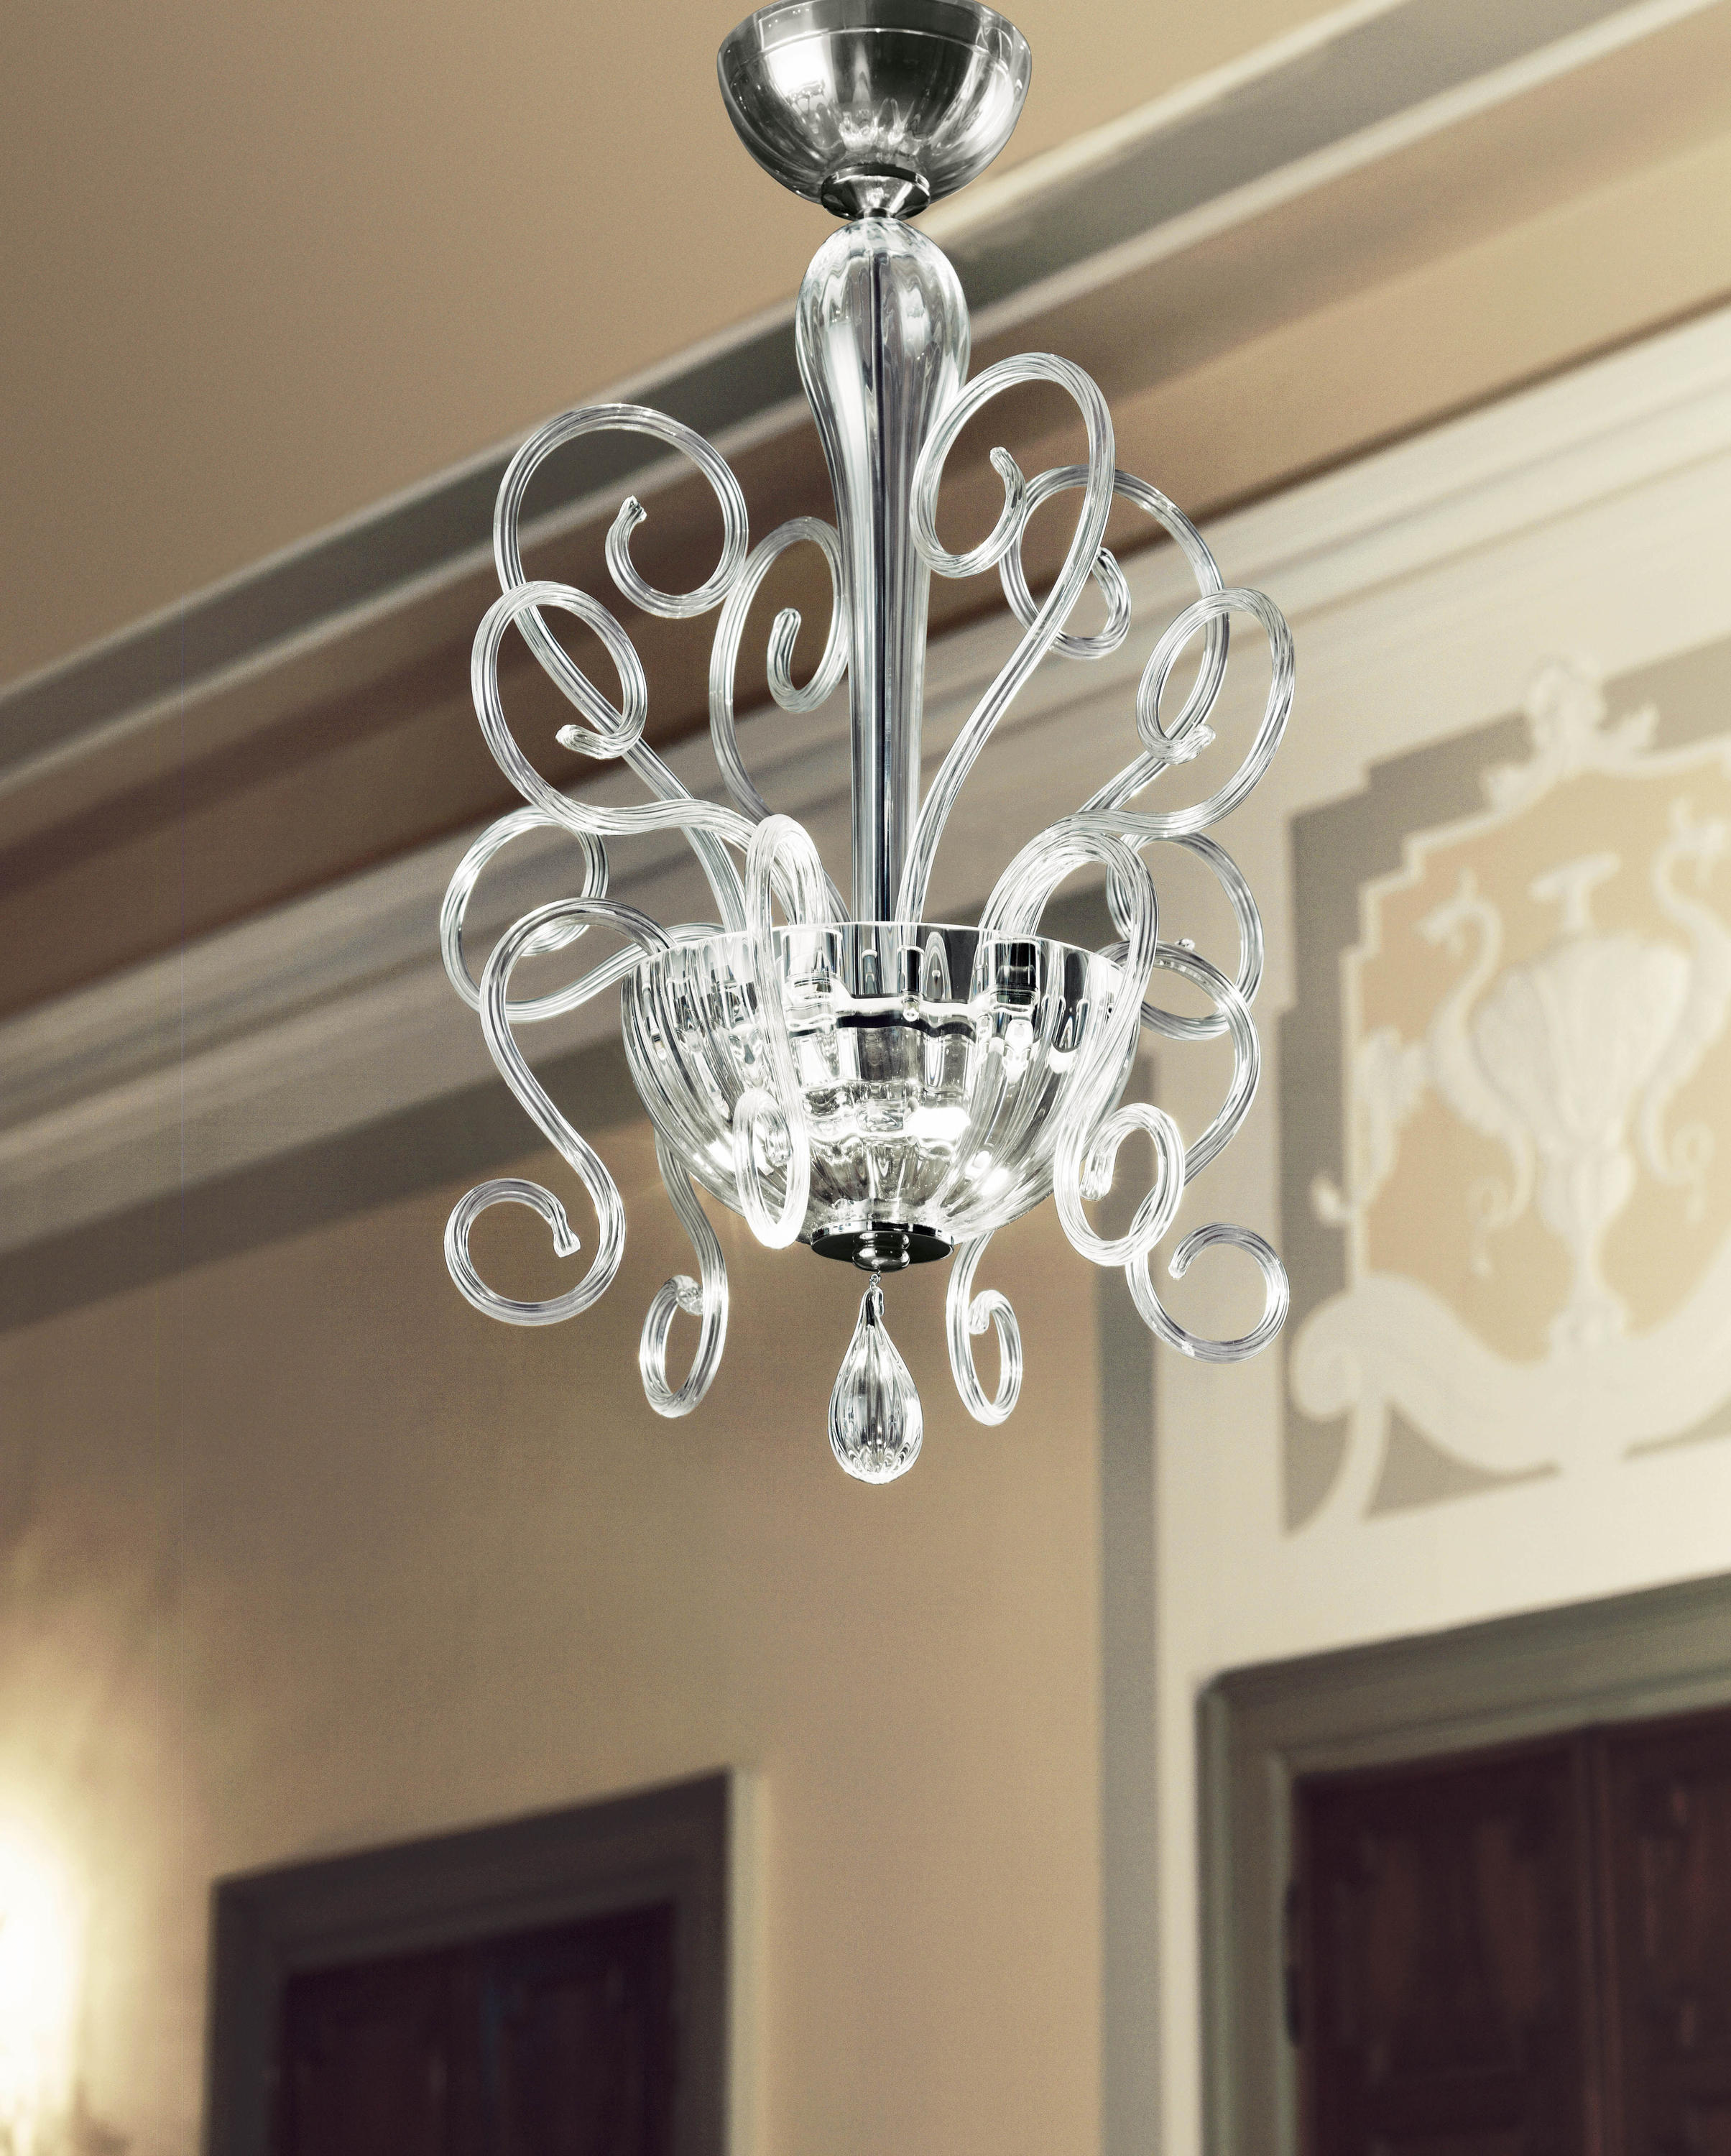 Bolero l6 ceiling suspended chandeliers from leucos usa architonic bolero l6 by leucos usa arubaitofo Image collections